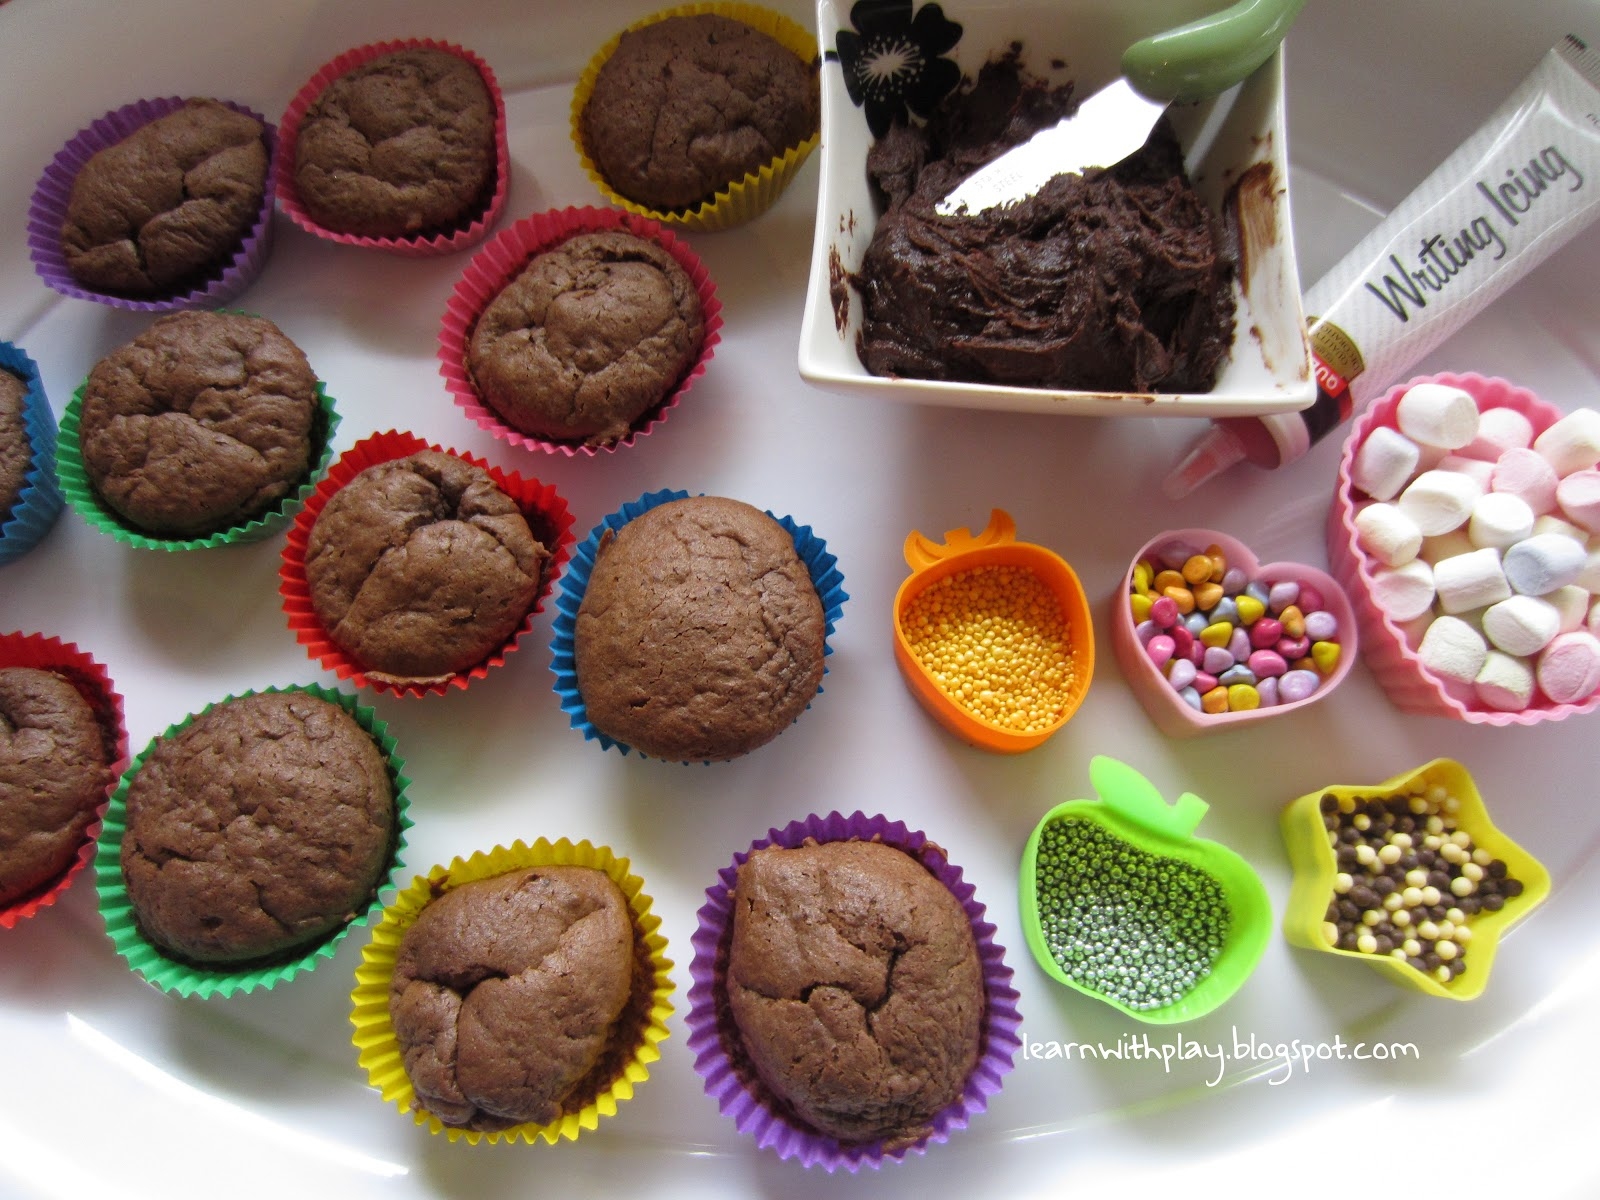 Learn with Play at Home  Decorating Cupcakes  With added Literacy     Mini cupcakes